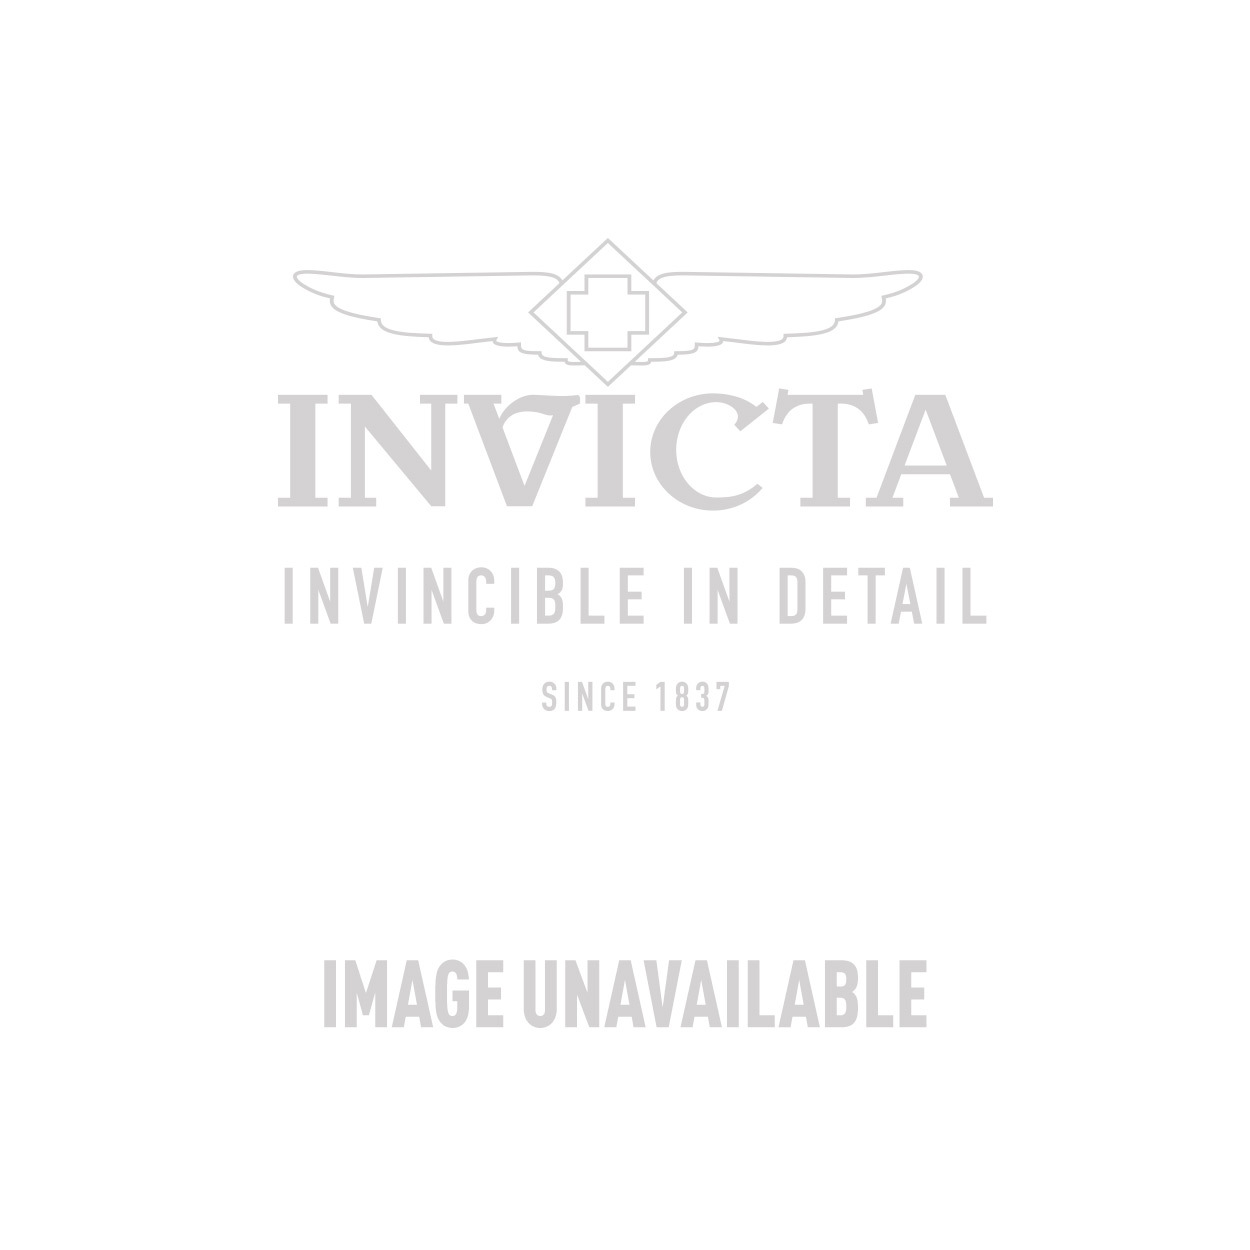 Invicta Bolt Swiss Made Quartz Watch - Gold case with Gold tone Stainless Steel band - Model 0822